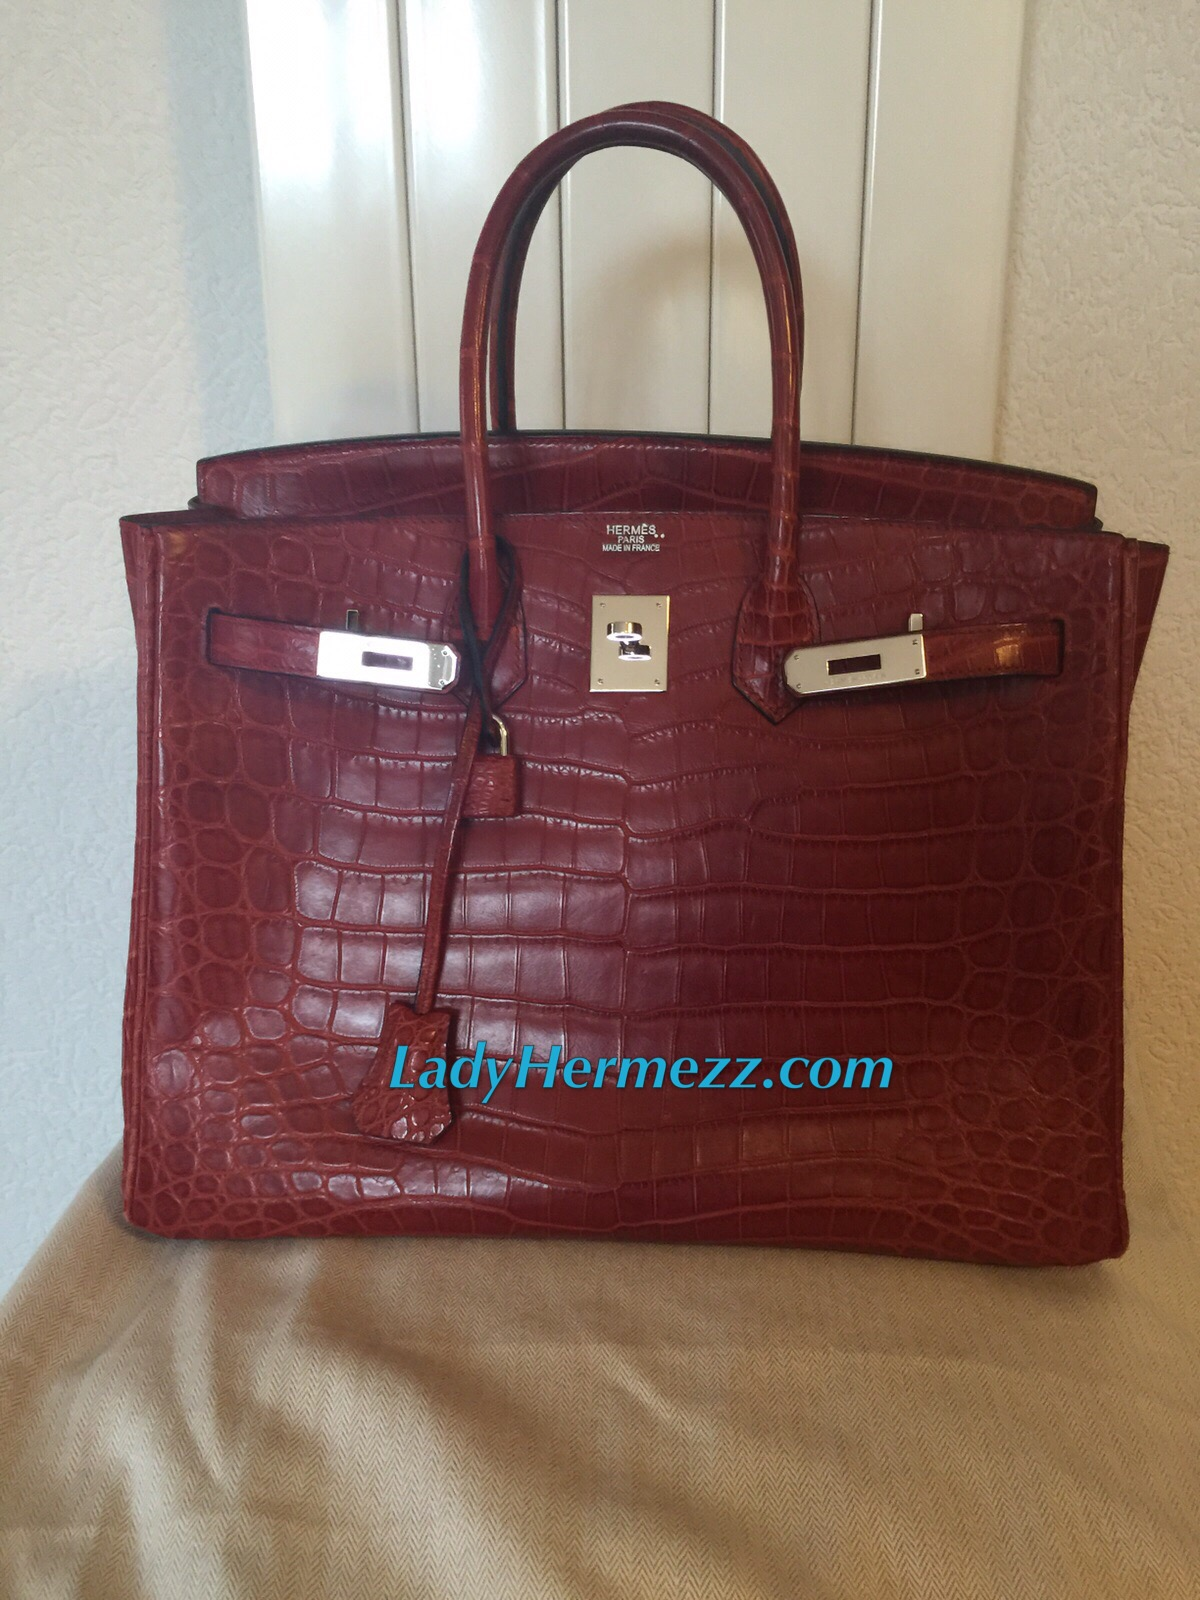 9cf3231fbc3d We hope to find this beautiful crocodile Birkin bag a lovely home. And be  cared for and admired by someone else for many years to come.